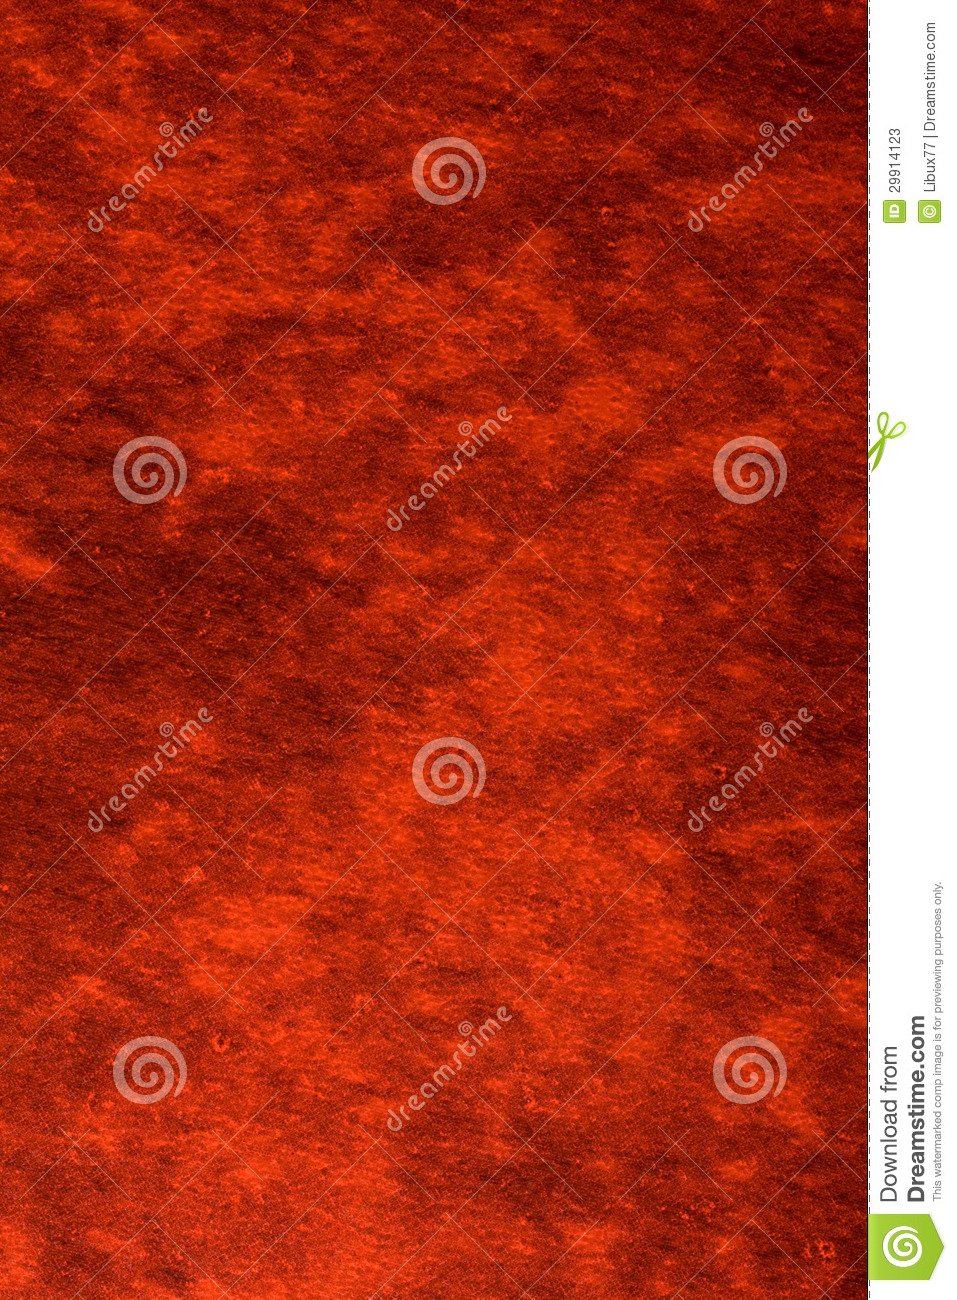 Grunge Book Cover Texture : Red grunge texture stock photos image